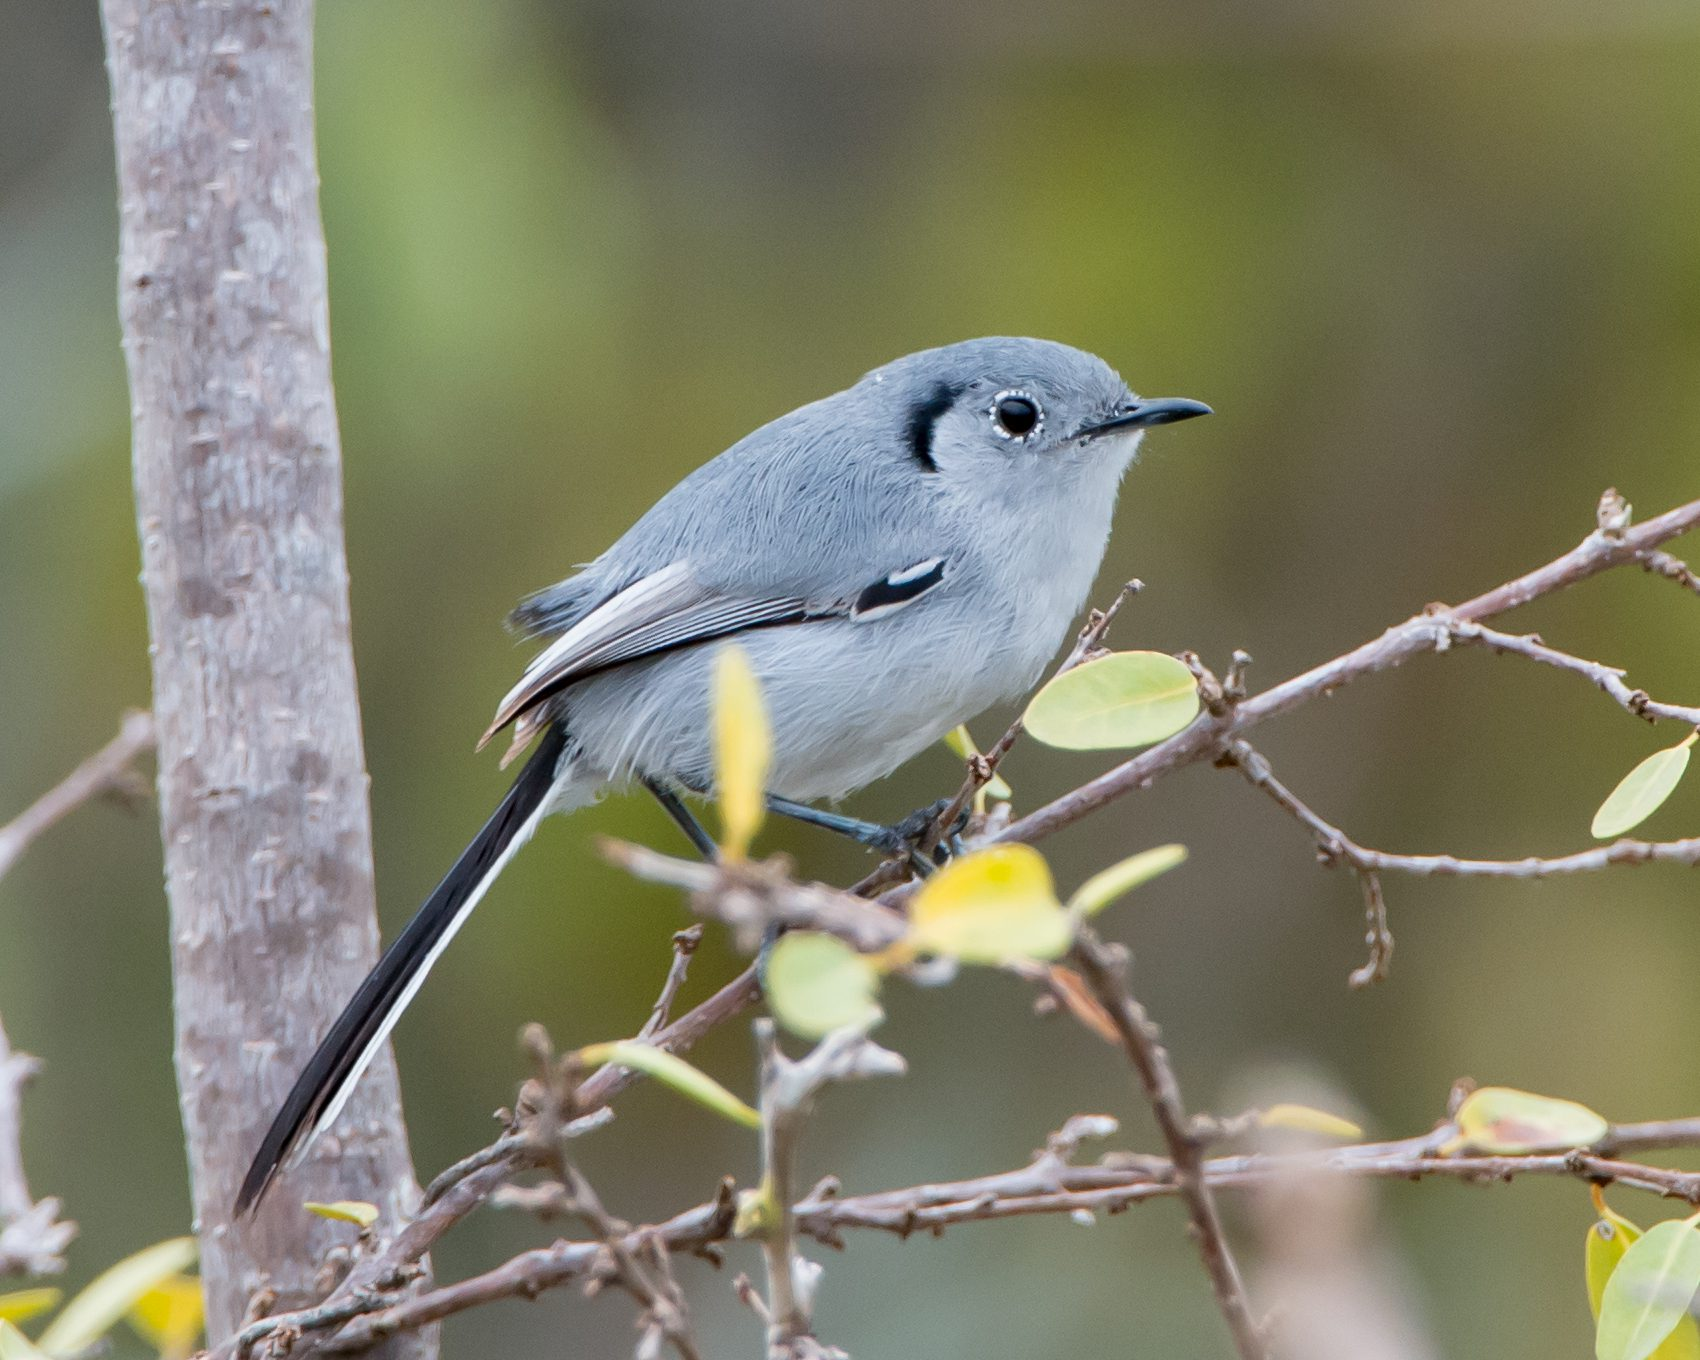 The Cuban Gnatcatcher is endemic to eastern Cuba.  It is similar to our Blue-gray Gnatcatcher, but smaller.